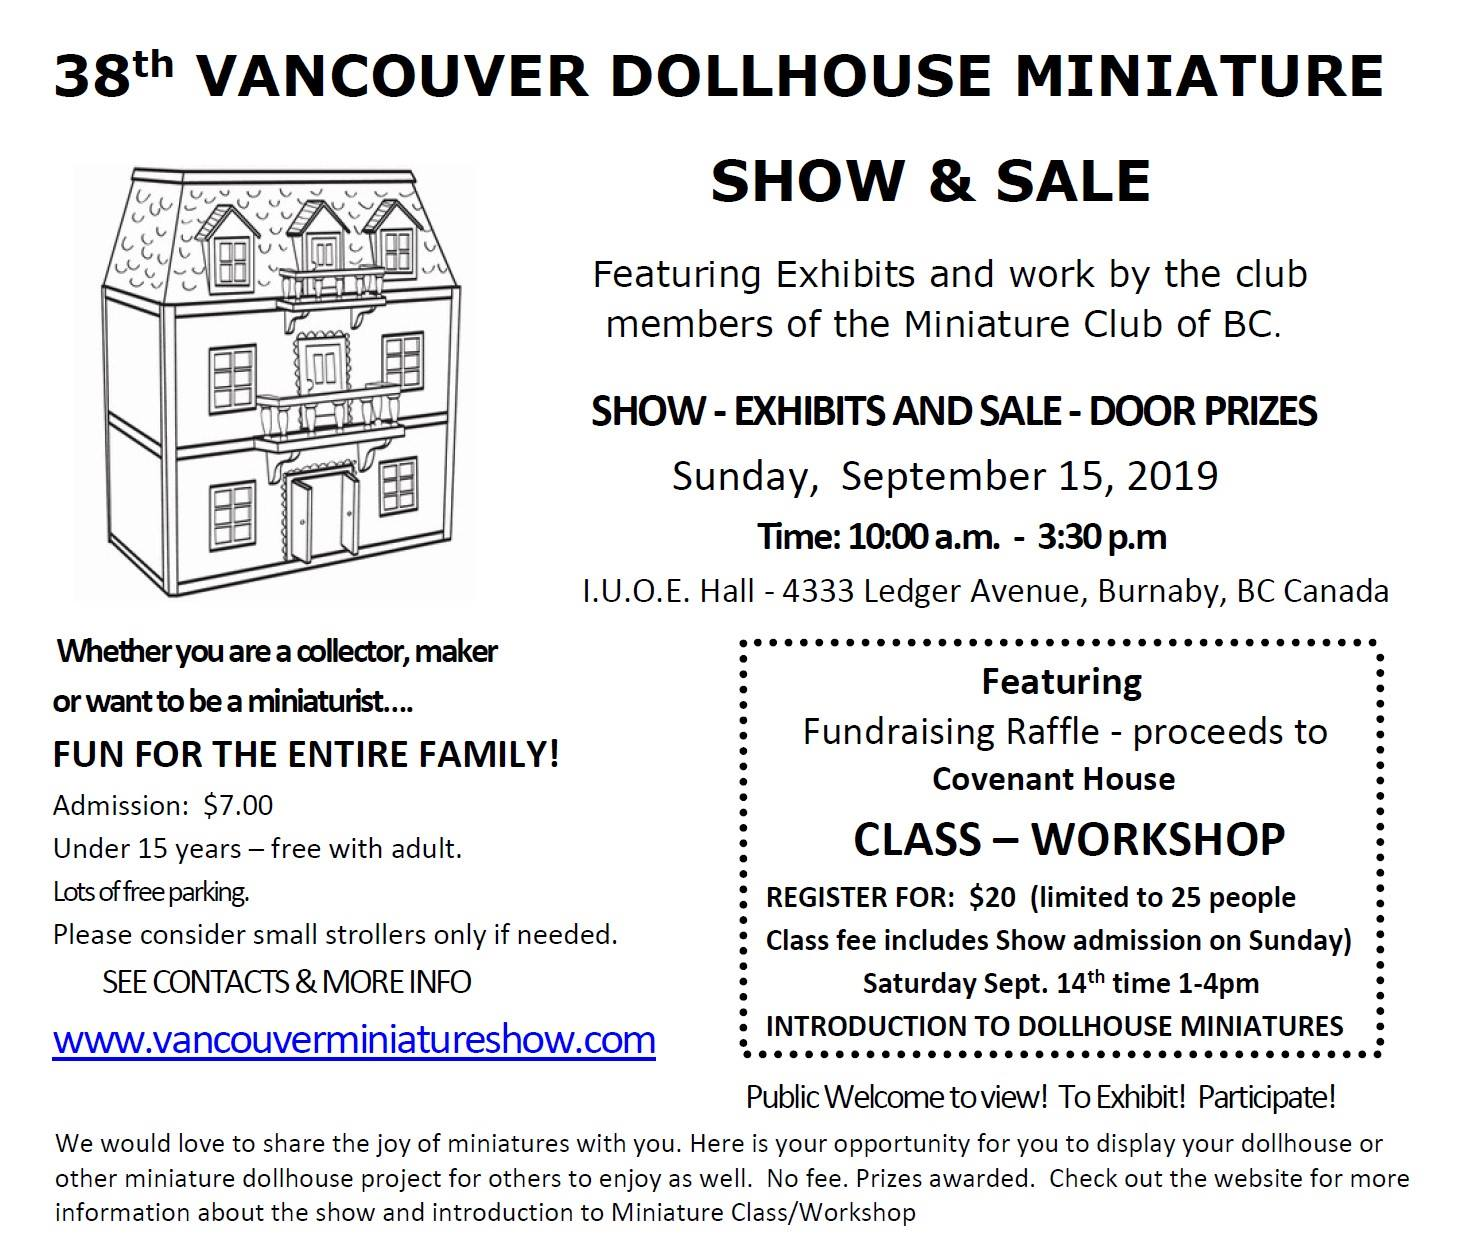 1:12 SCALE MINIATURE PAPER DOLLS MADELINE DOLLHOUSE SCALE